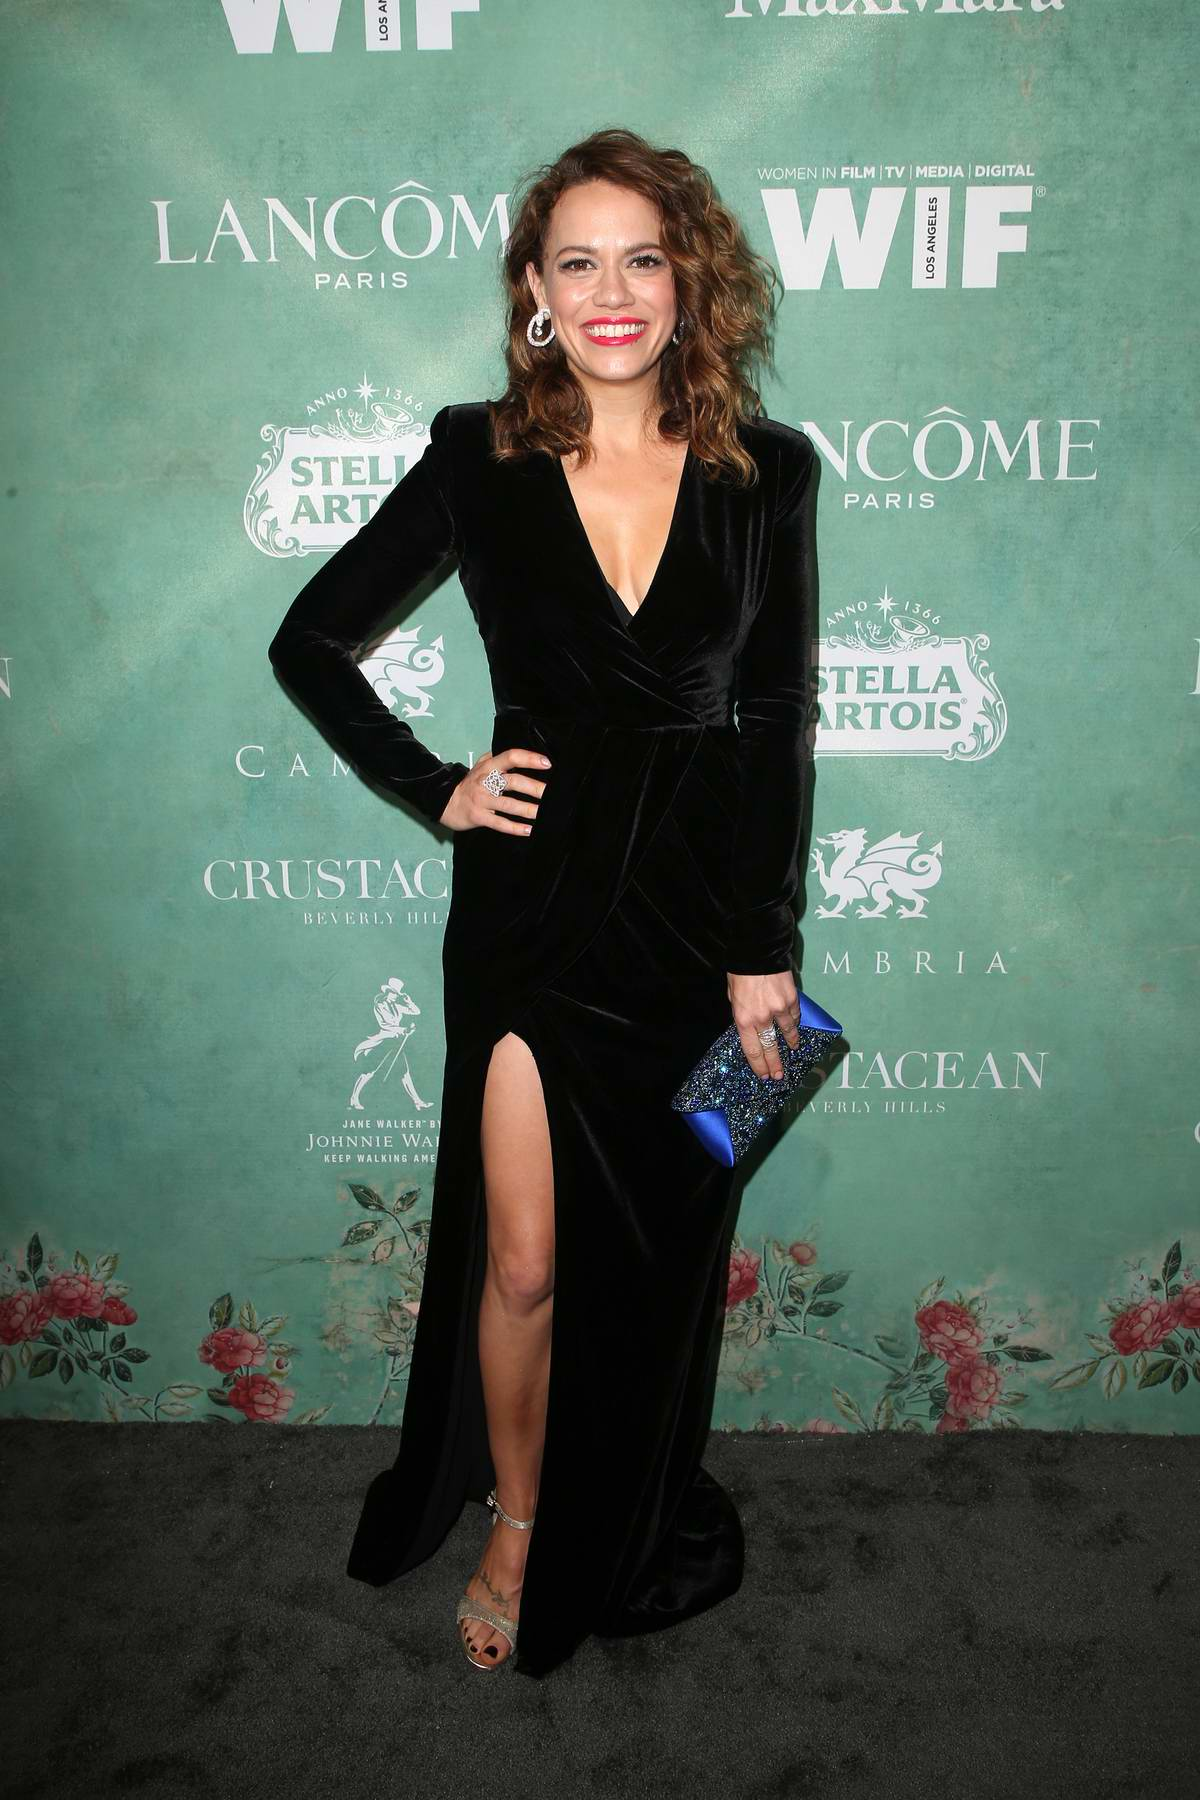 83e5de6e73c0 Bethany Joy Lenz attends the 11th Annual Women In Film Pre-Oscar Cocktail  Party at Crustacean in Beverly Hills